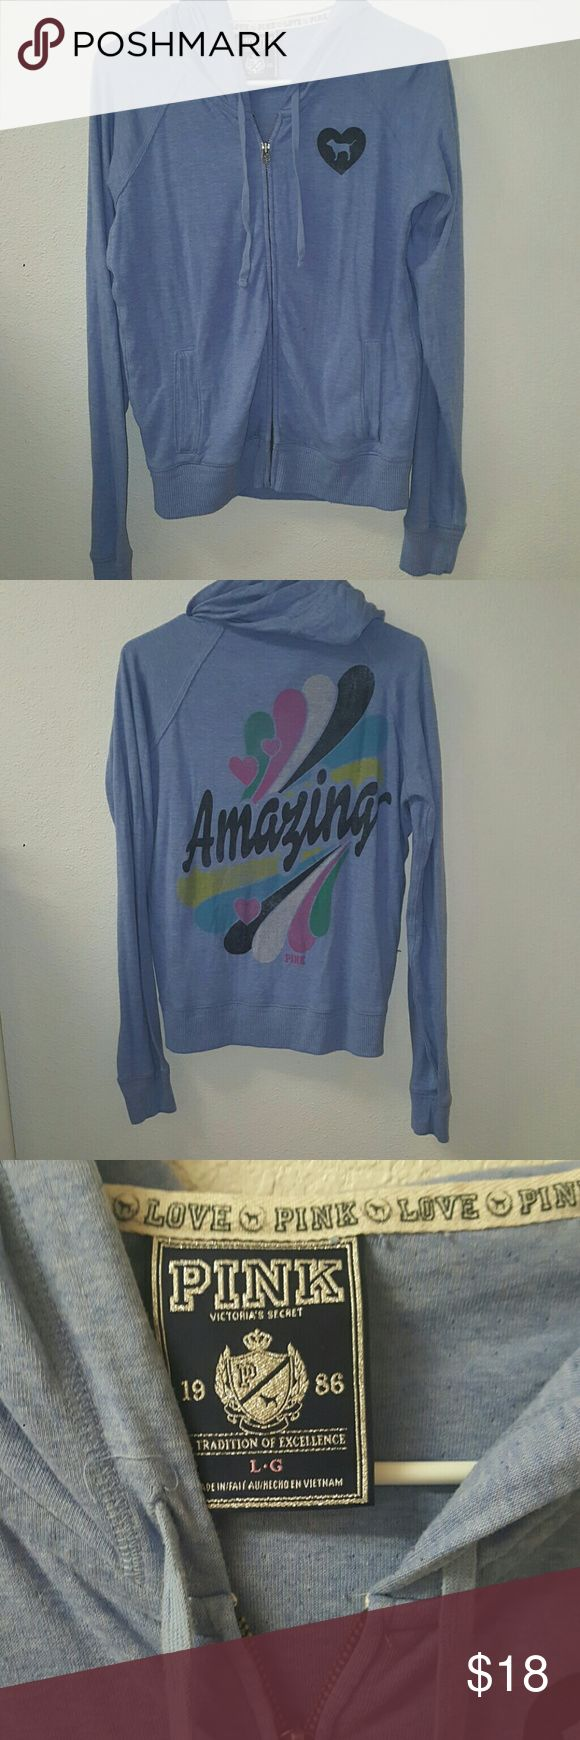 Vintage baby blue zip up Vintage Amazing zip up hooded light weight sweat shirt. PINK Victoria's Secret Tops